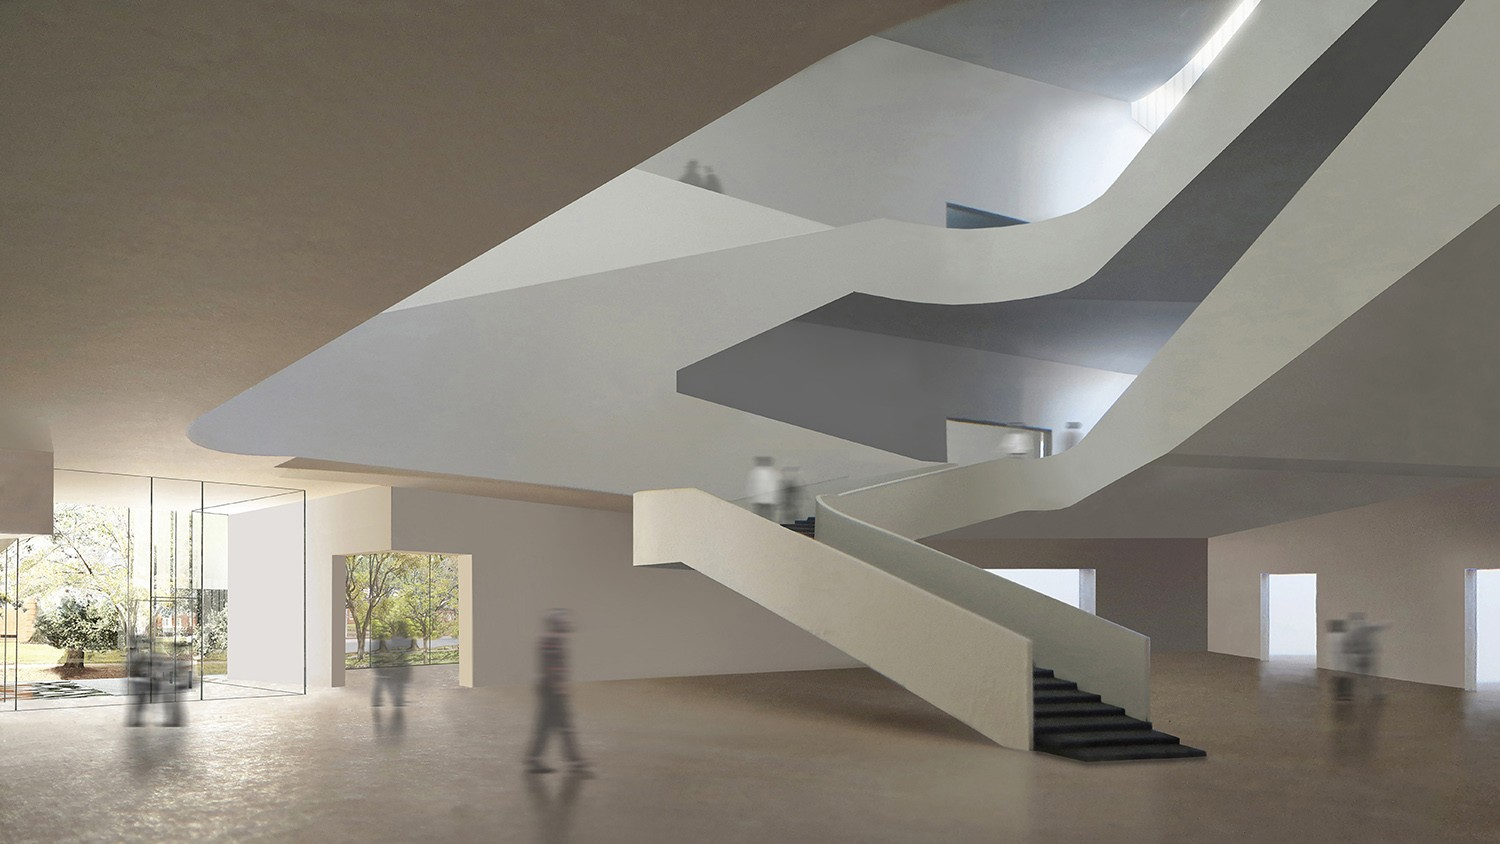 https://s3.us-east-2.amazonaws.com/steven-holl/uploads/projects/project-images/StevenHollArchitects_MFAH_SHA_11_04 B-edit3_WH.jpg